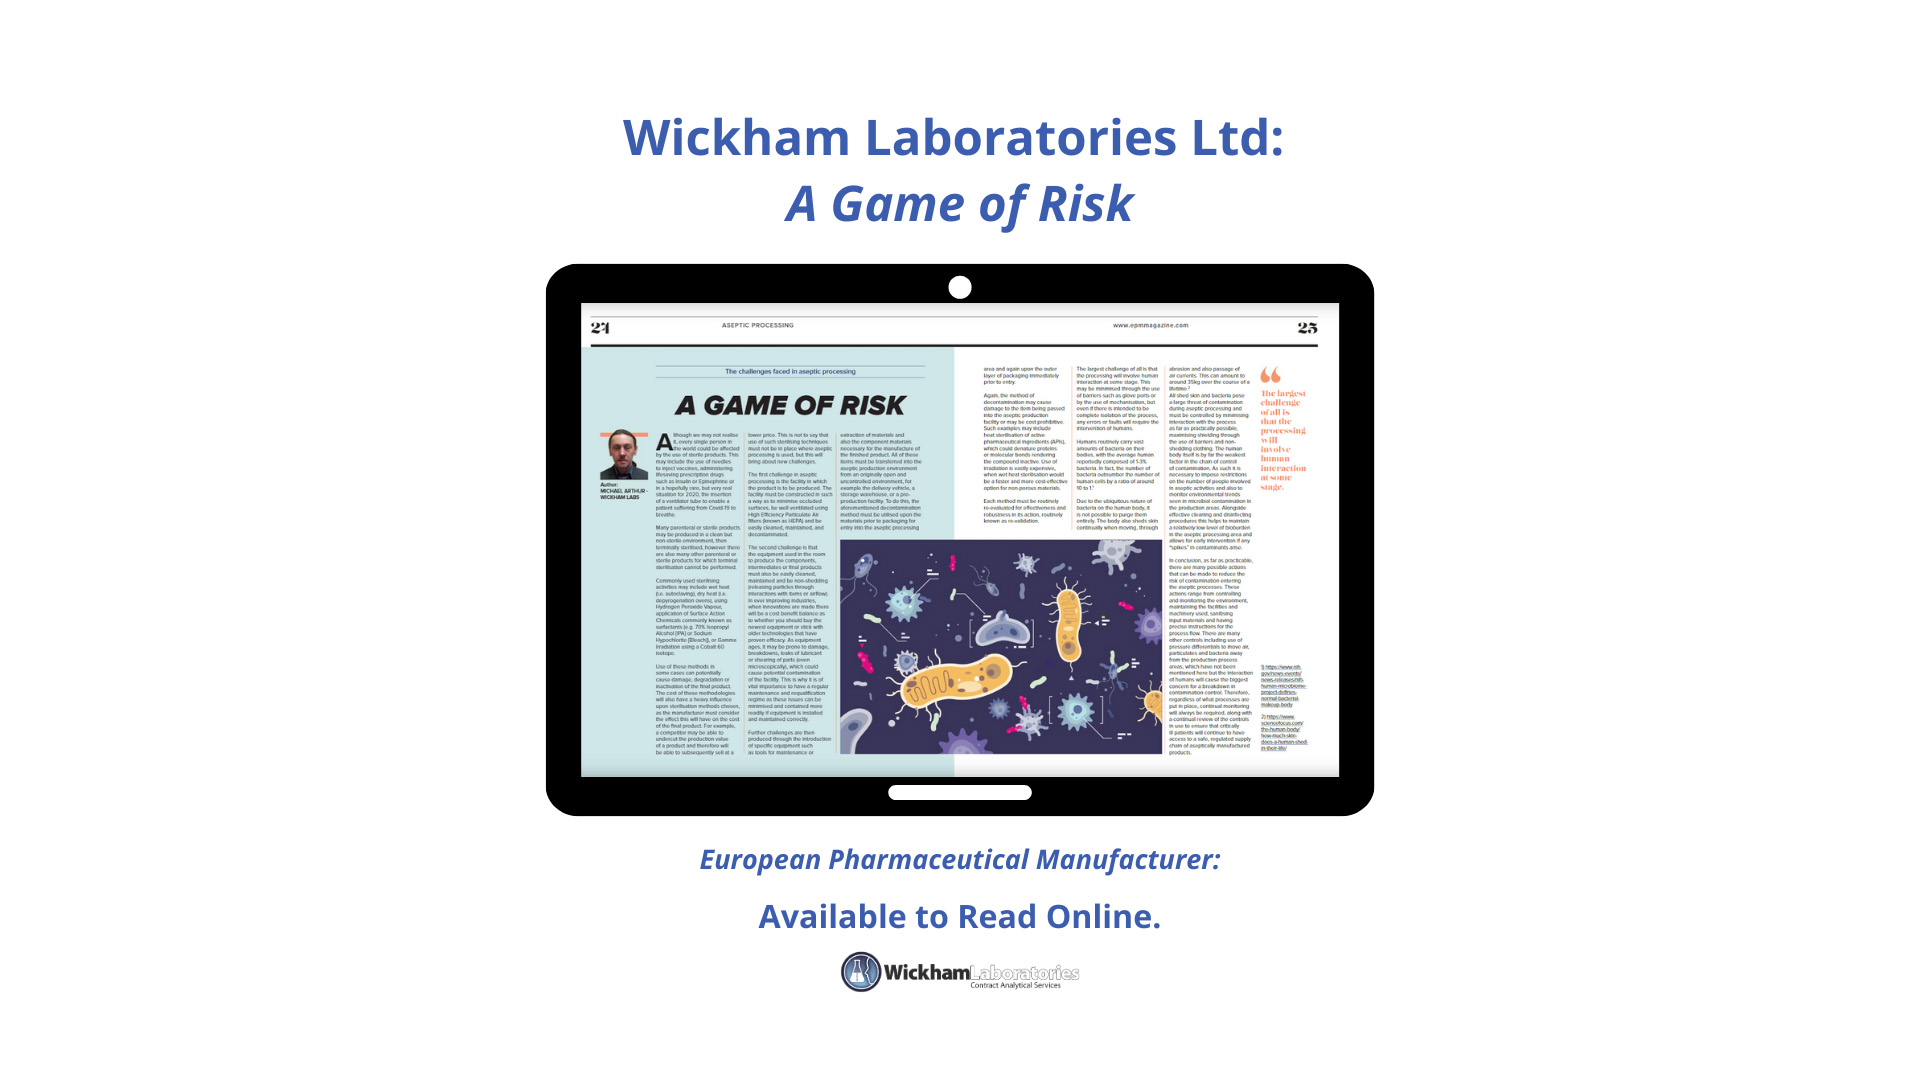 Wickham_Game_of_Risk.jpg